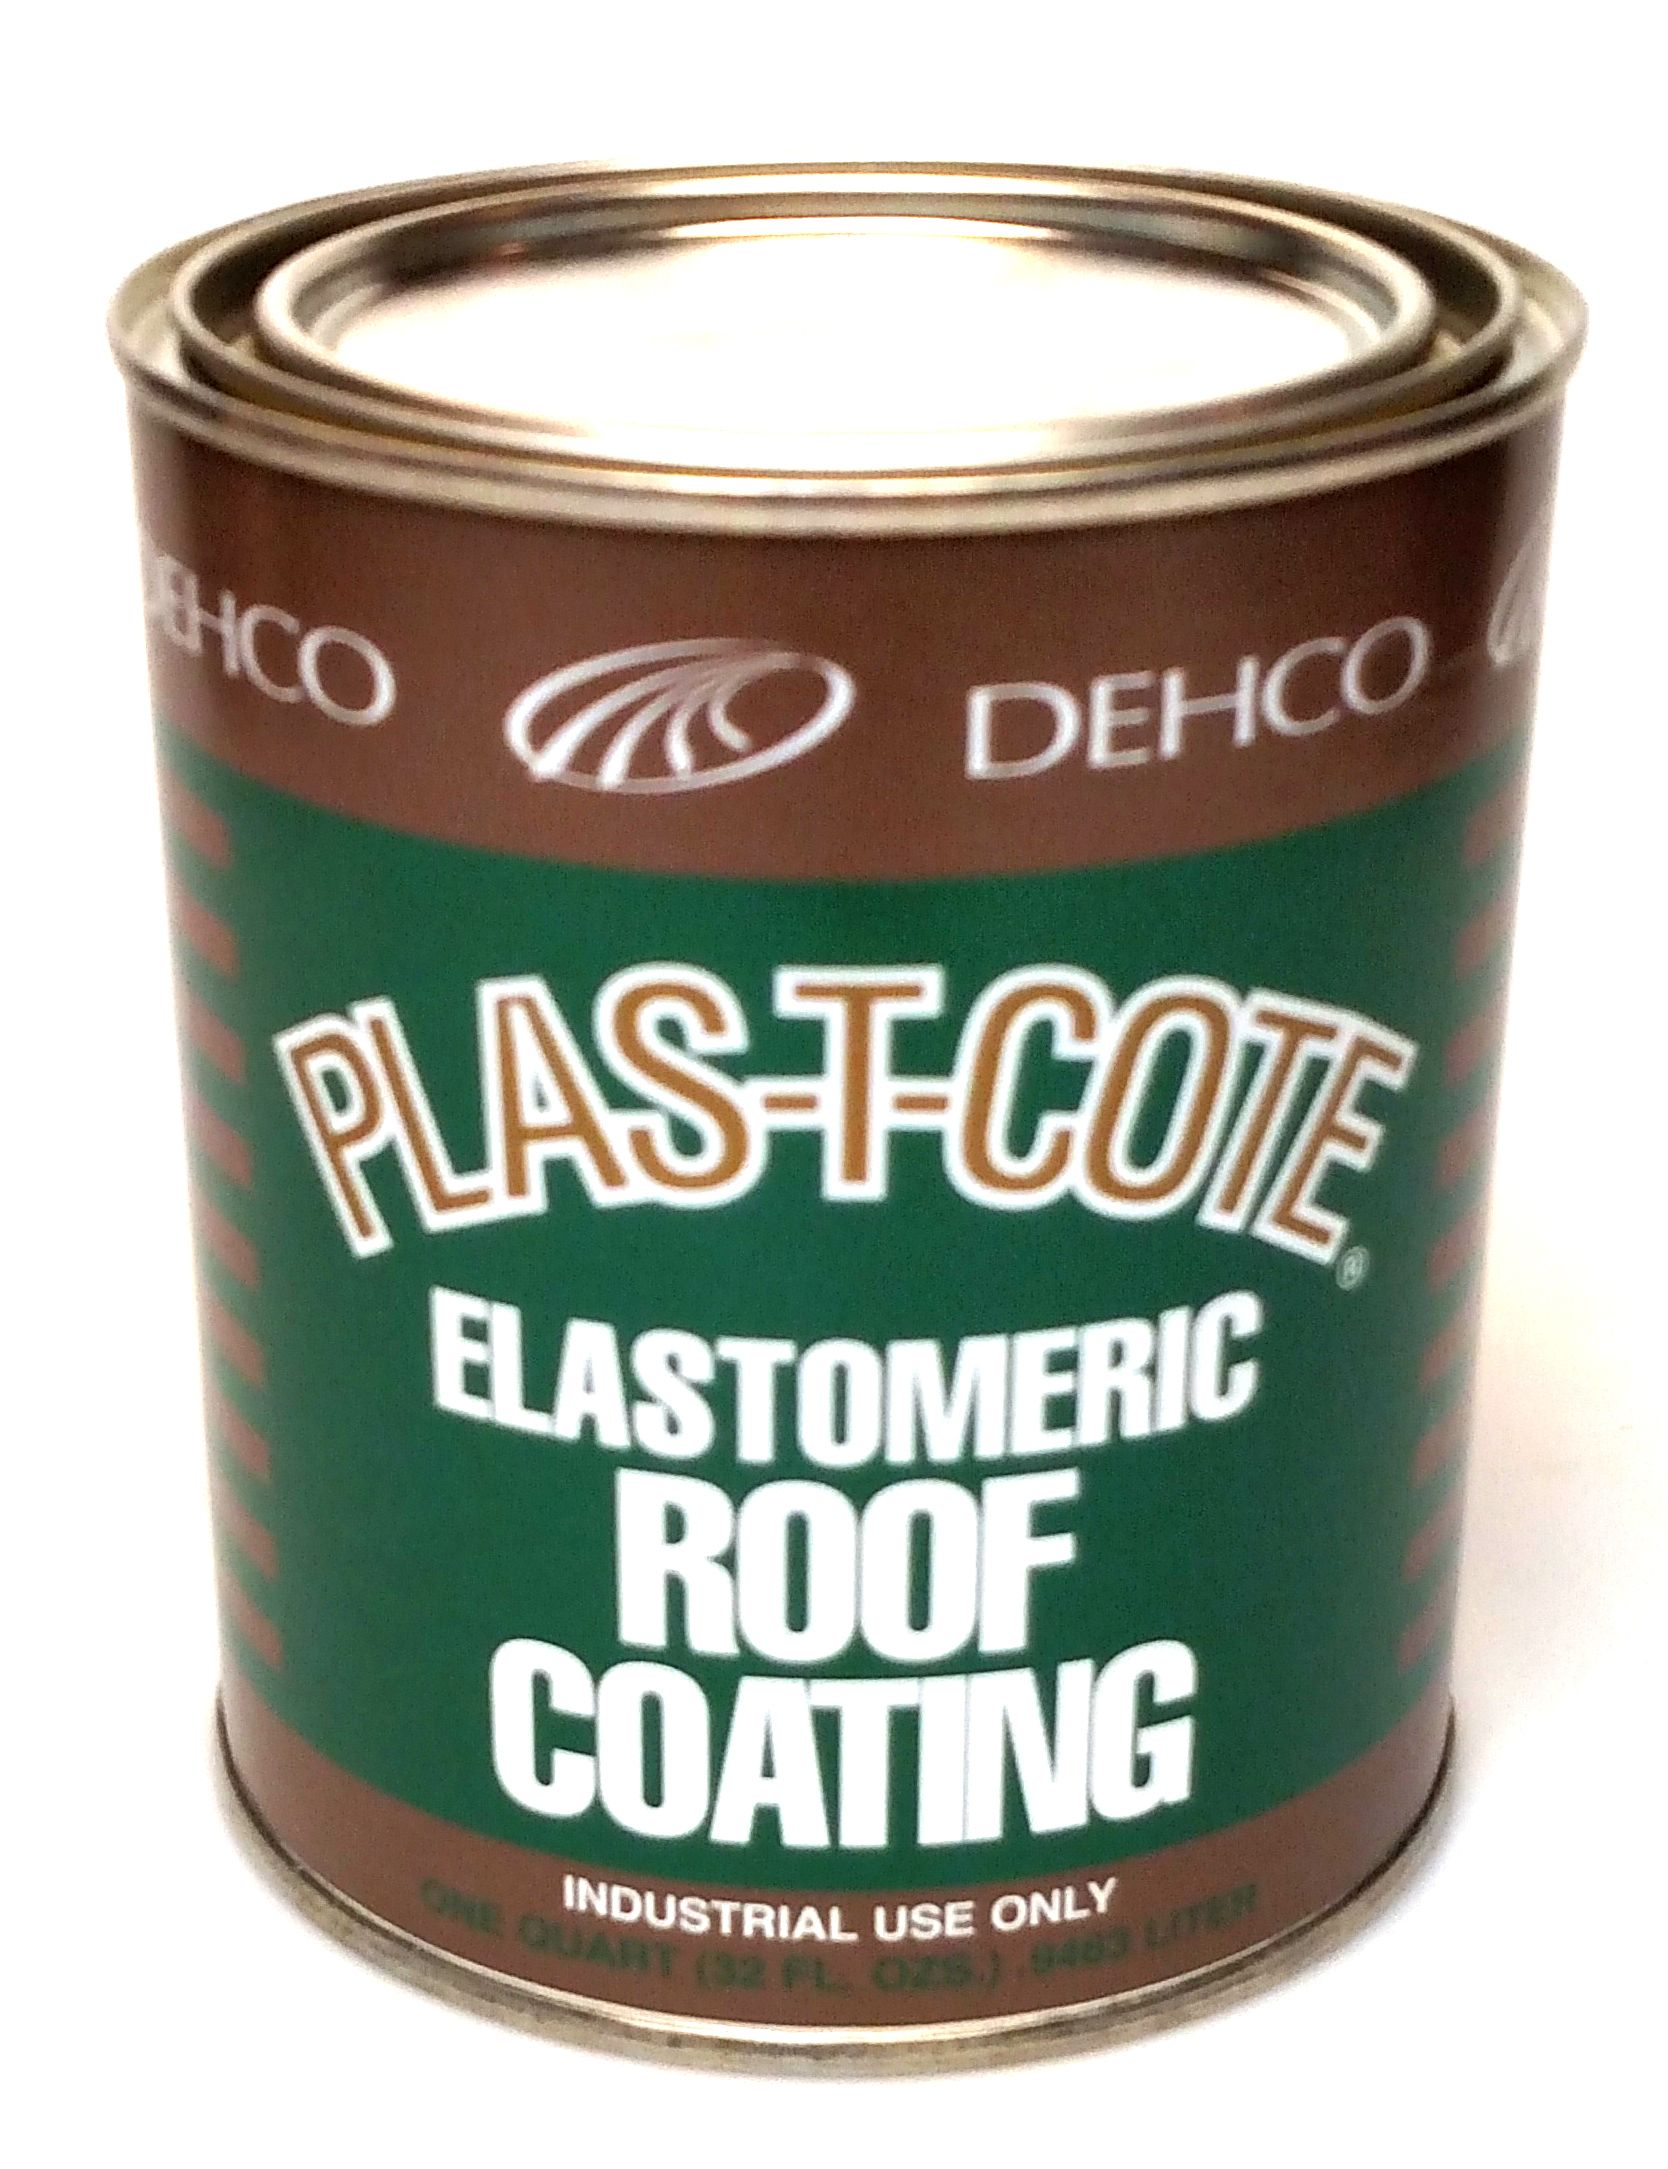 16-47032 Dehco Roof Coating Used On Asphalt Roof Shingles/ Galvanized